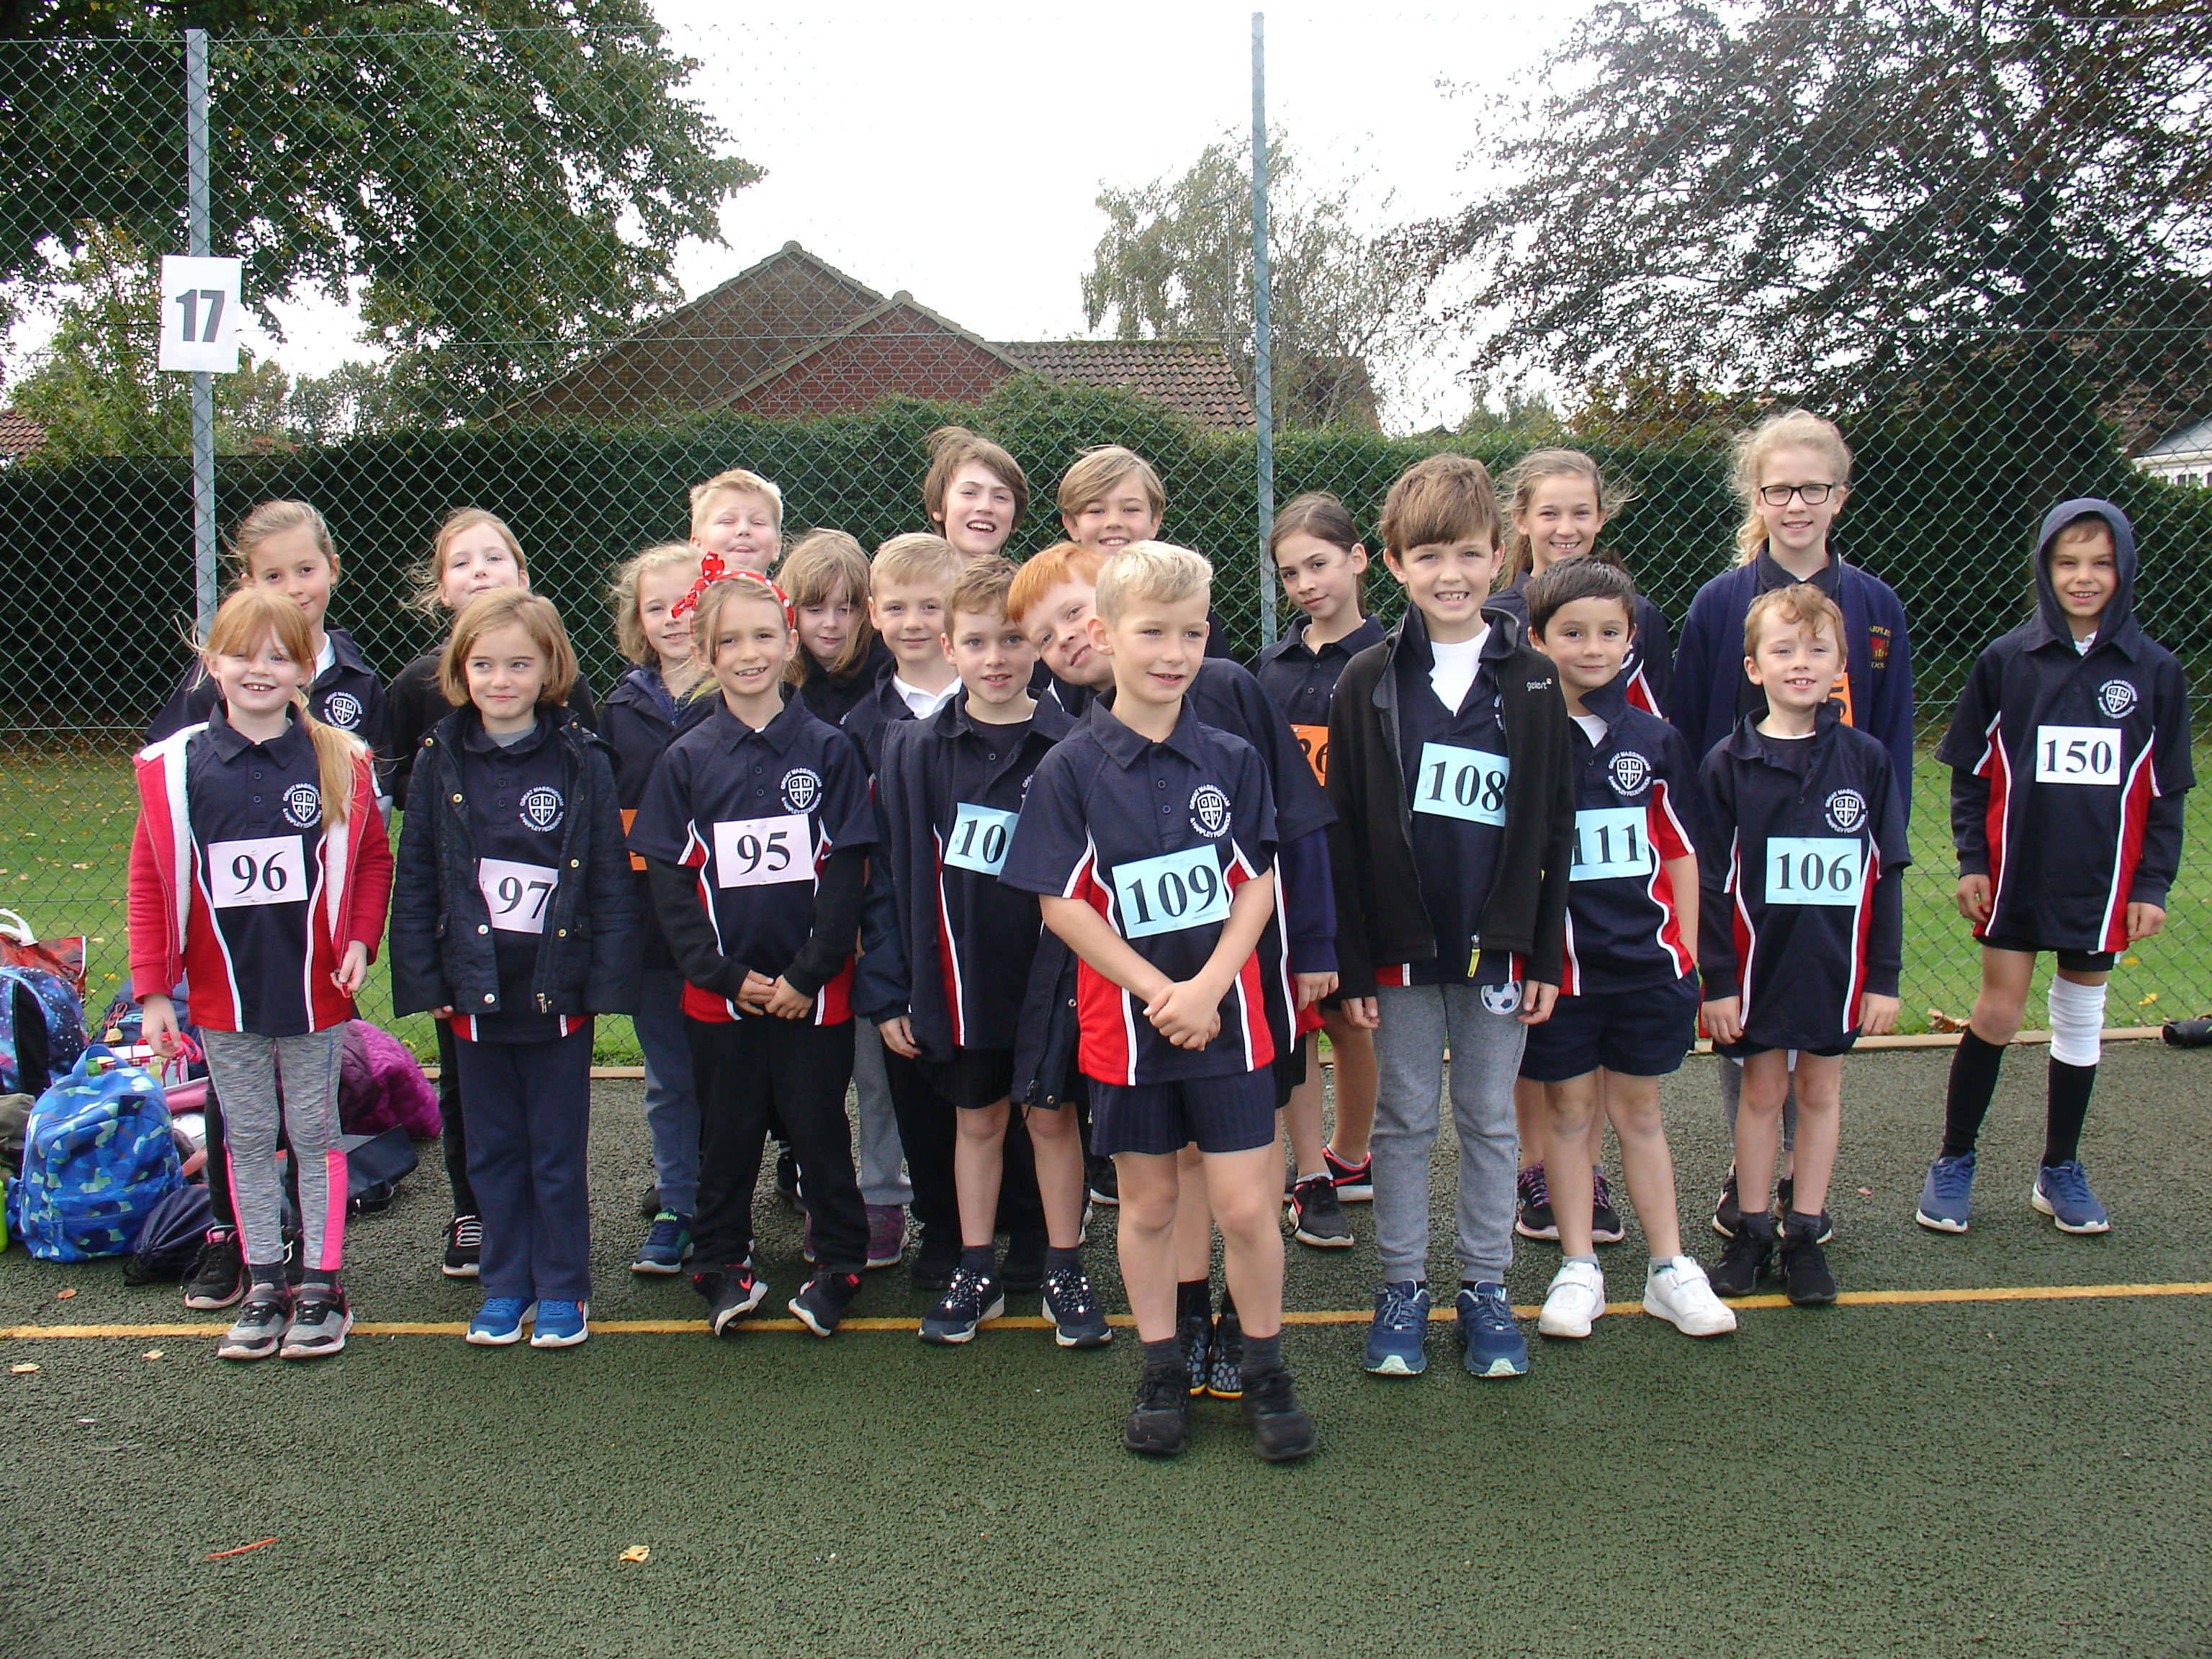 Federation Cross Country Team